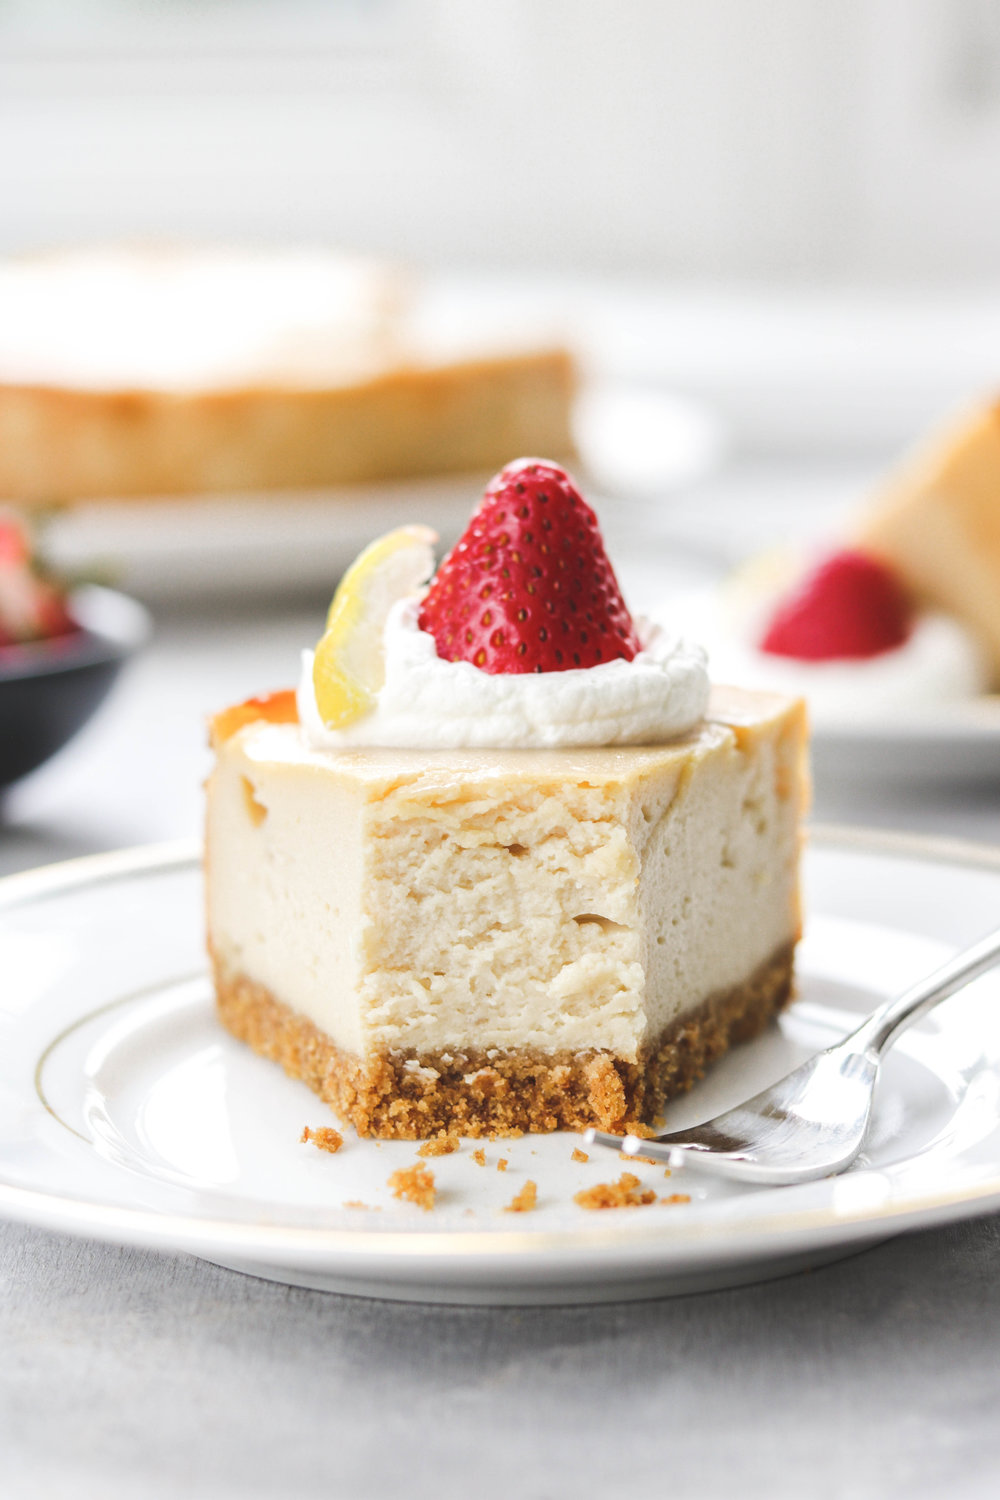 BAKED VEGAN CHEESECAKE NUT FREE